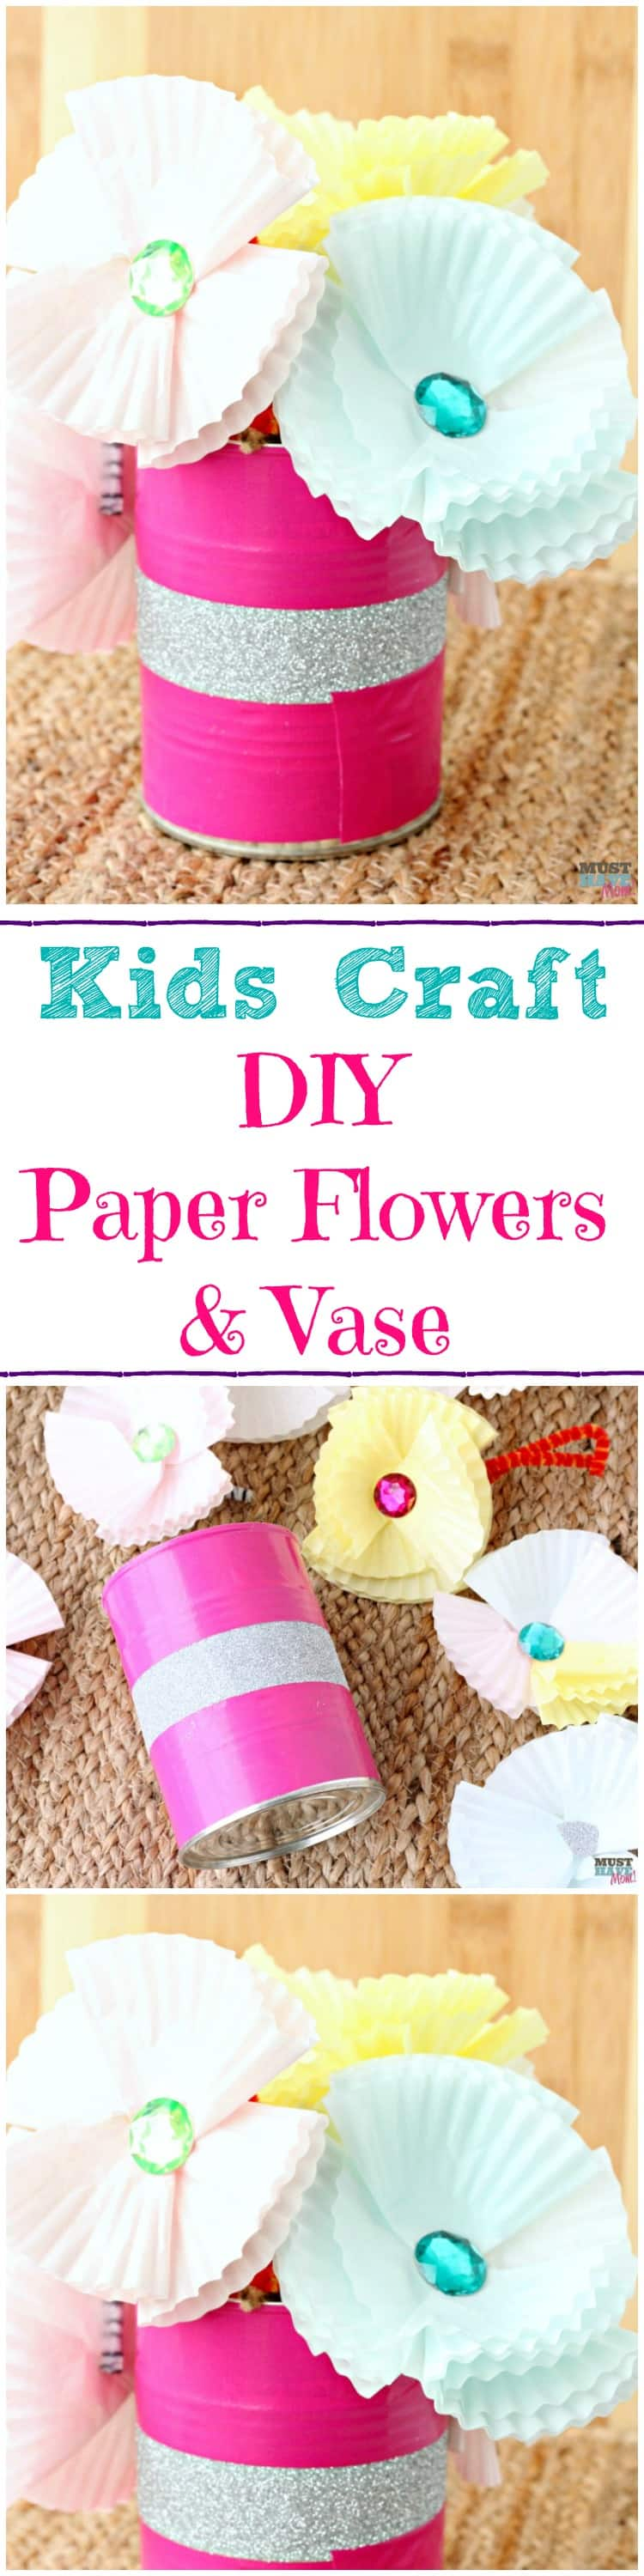 DIY Paper Flowers and Vase. Adorable Kids Craft for a Mother's Day gift idea. Mother Day craft for kids